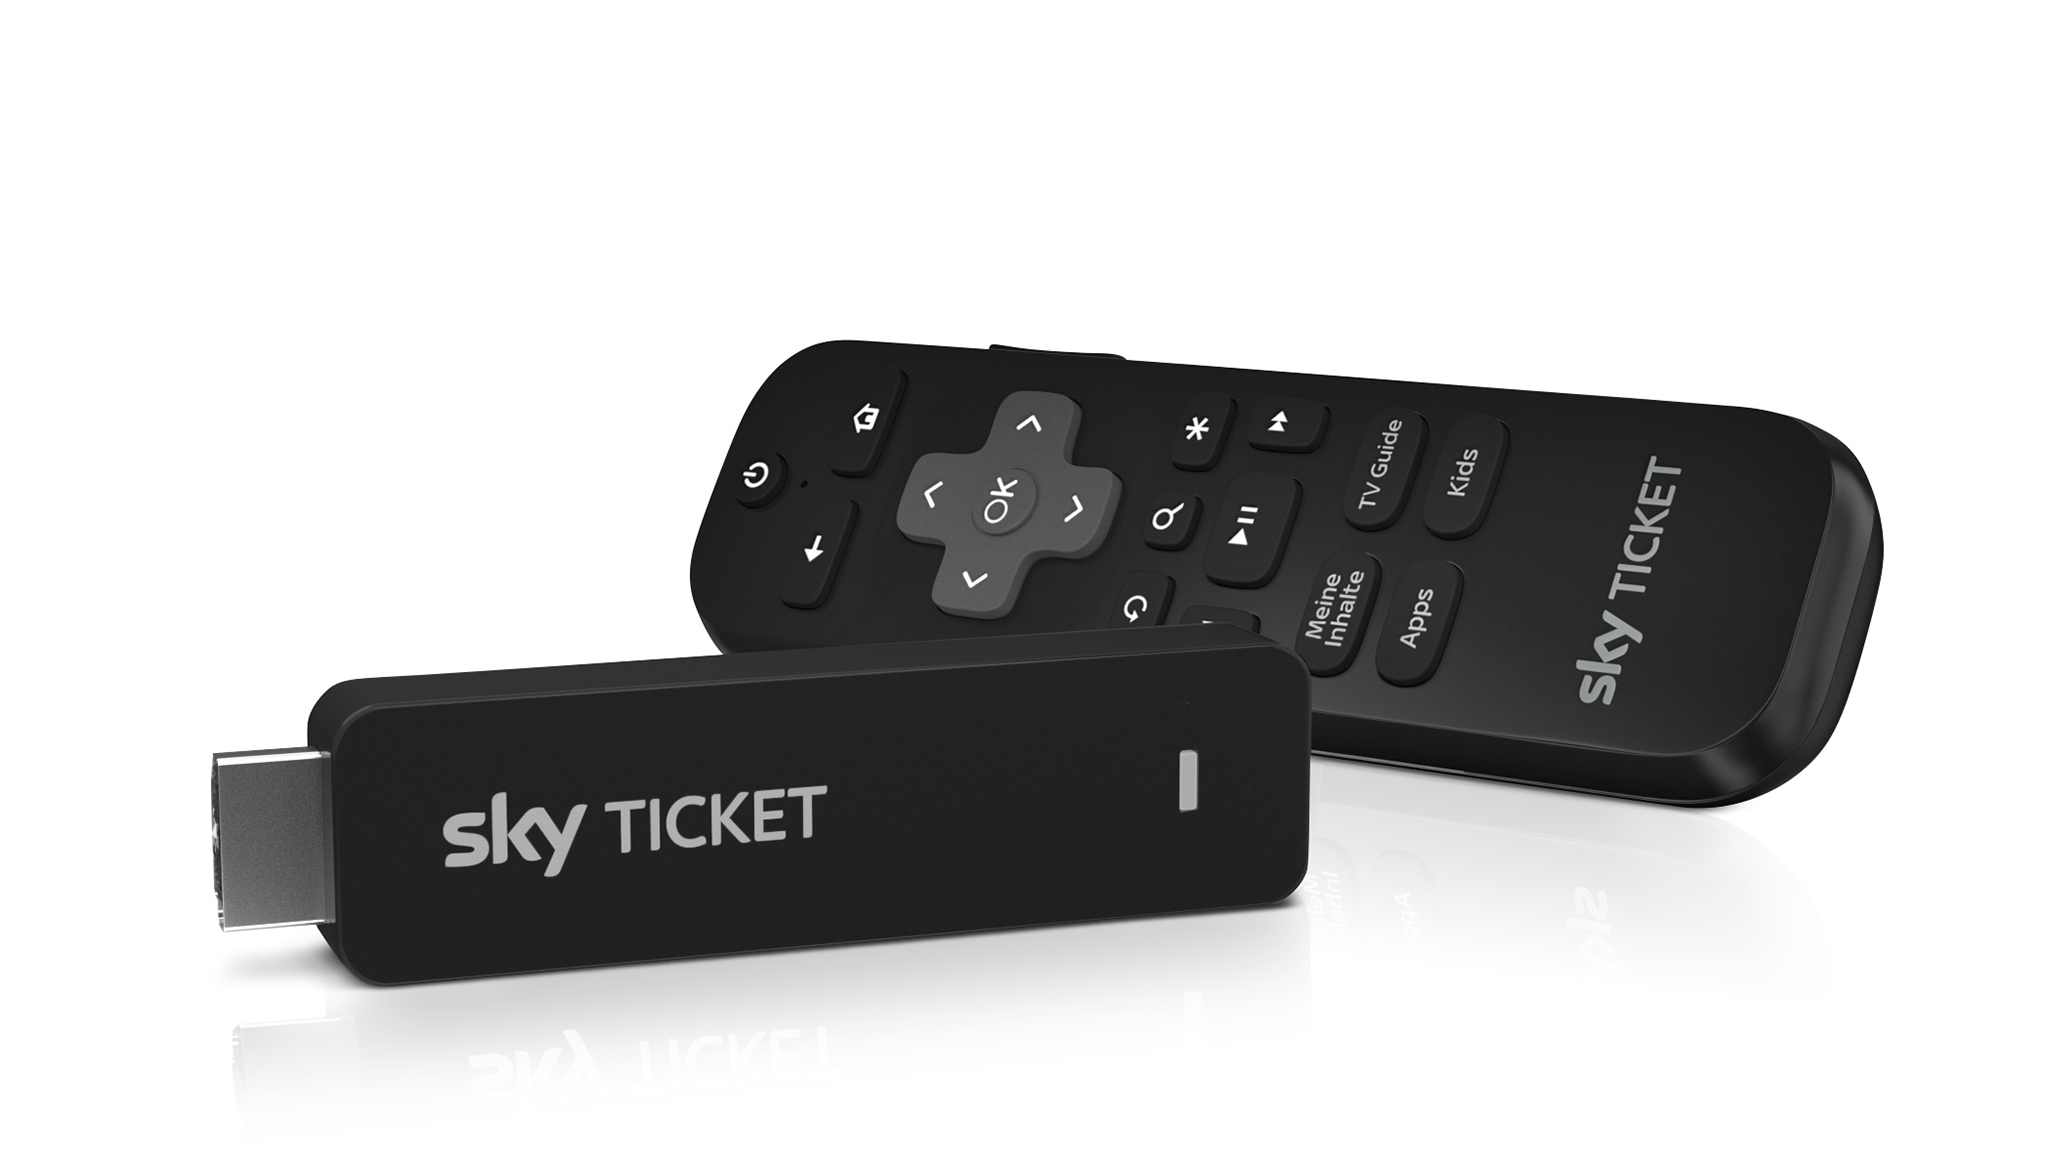 Disney + is now available on the Sky Ticket TV Stick